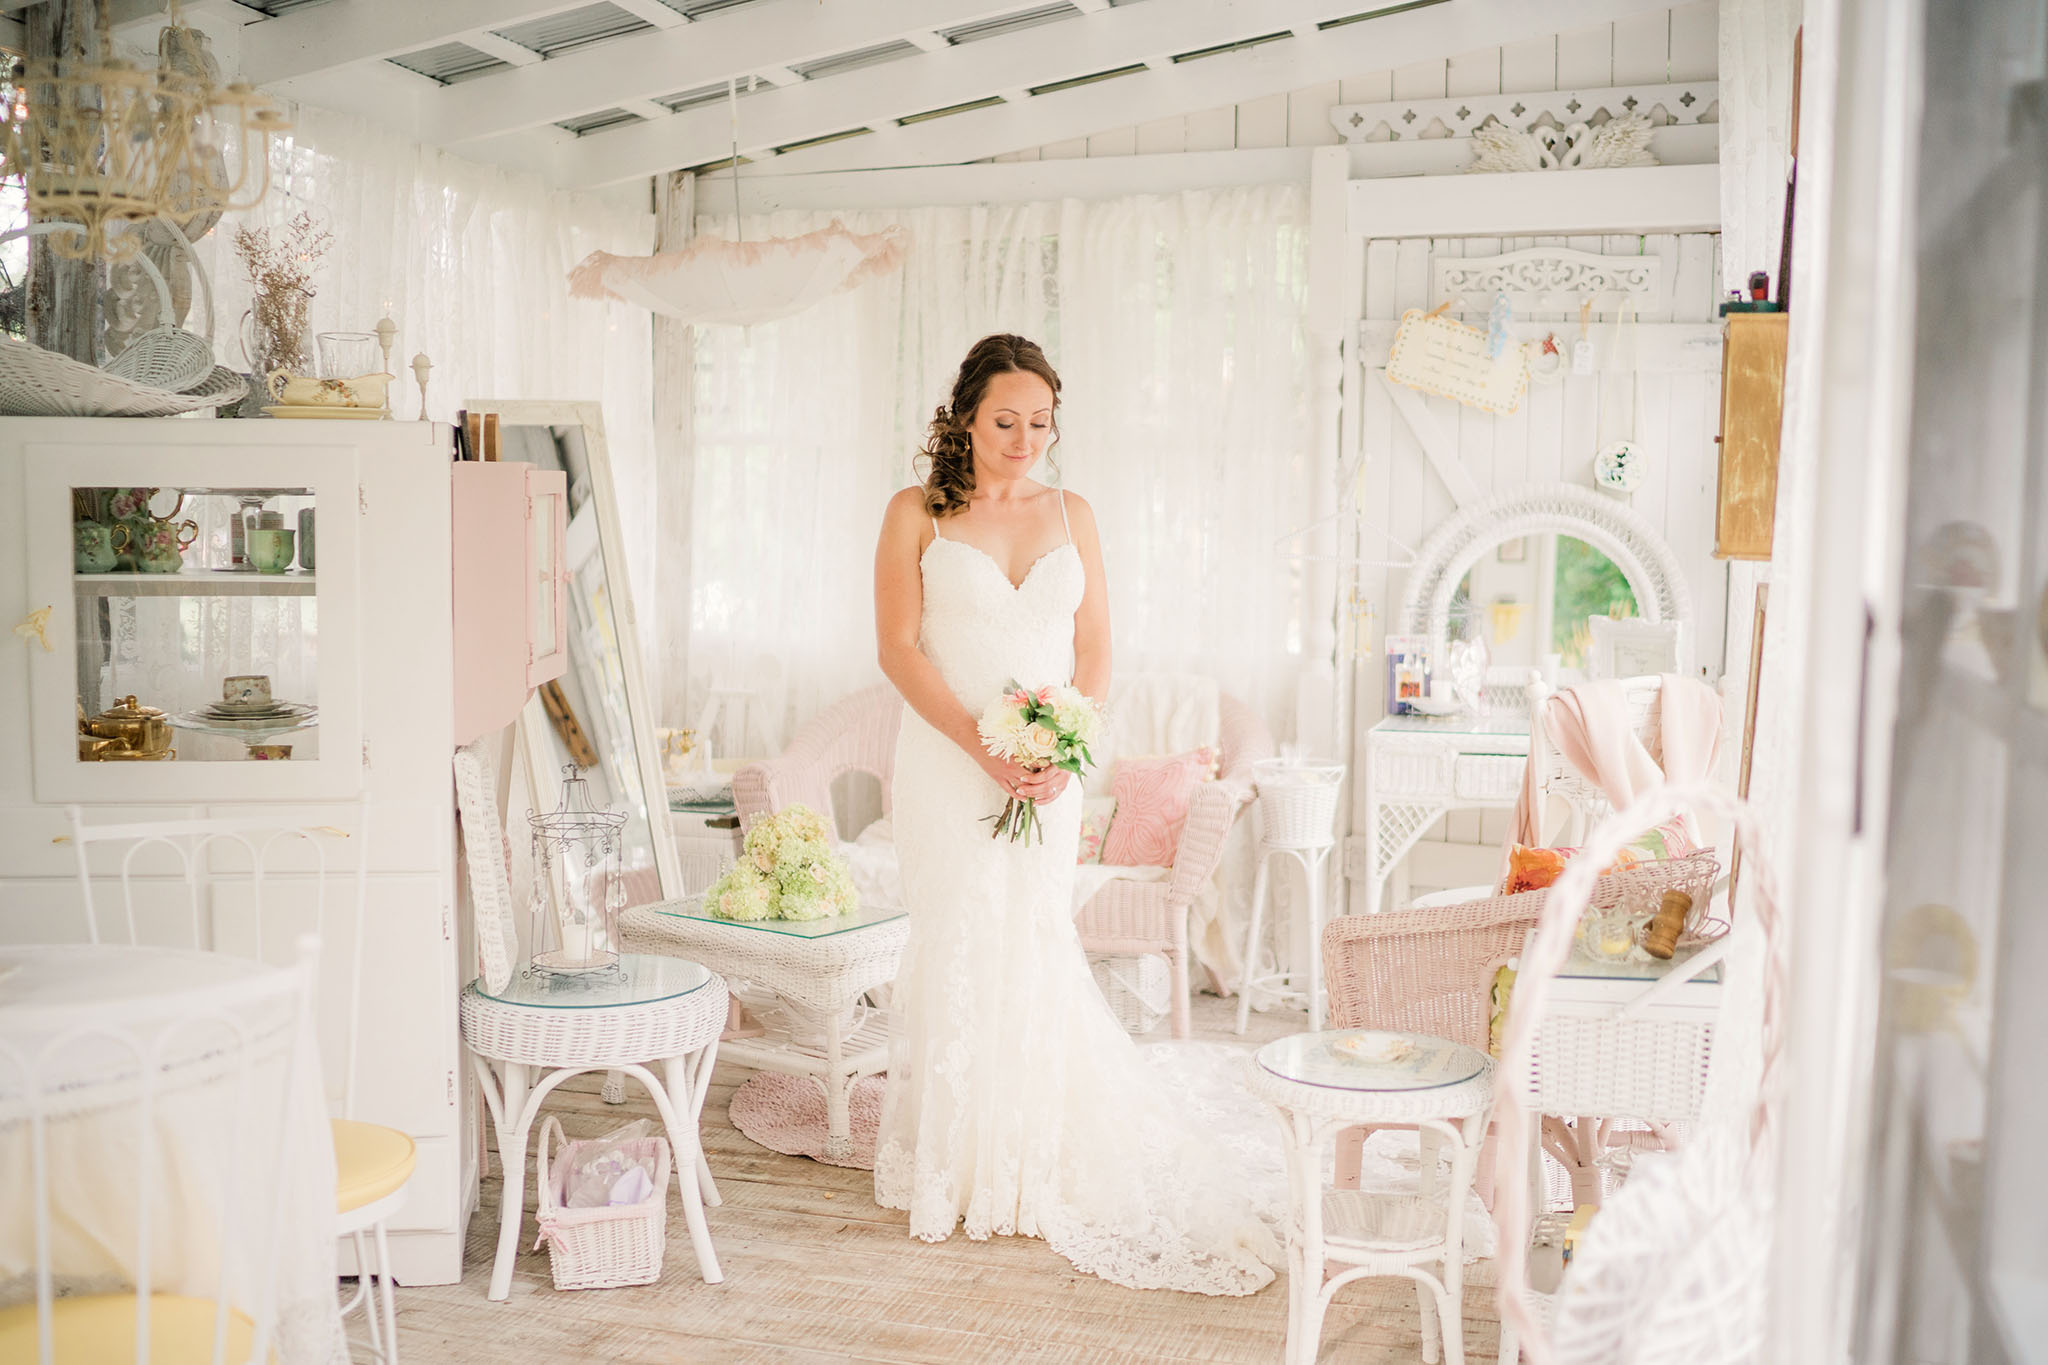 Bride in white dress standing in centre of room contemplating her big moment that is about to happen.